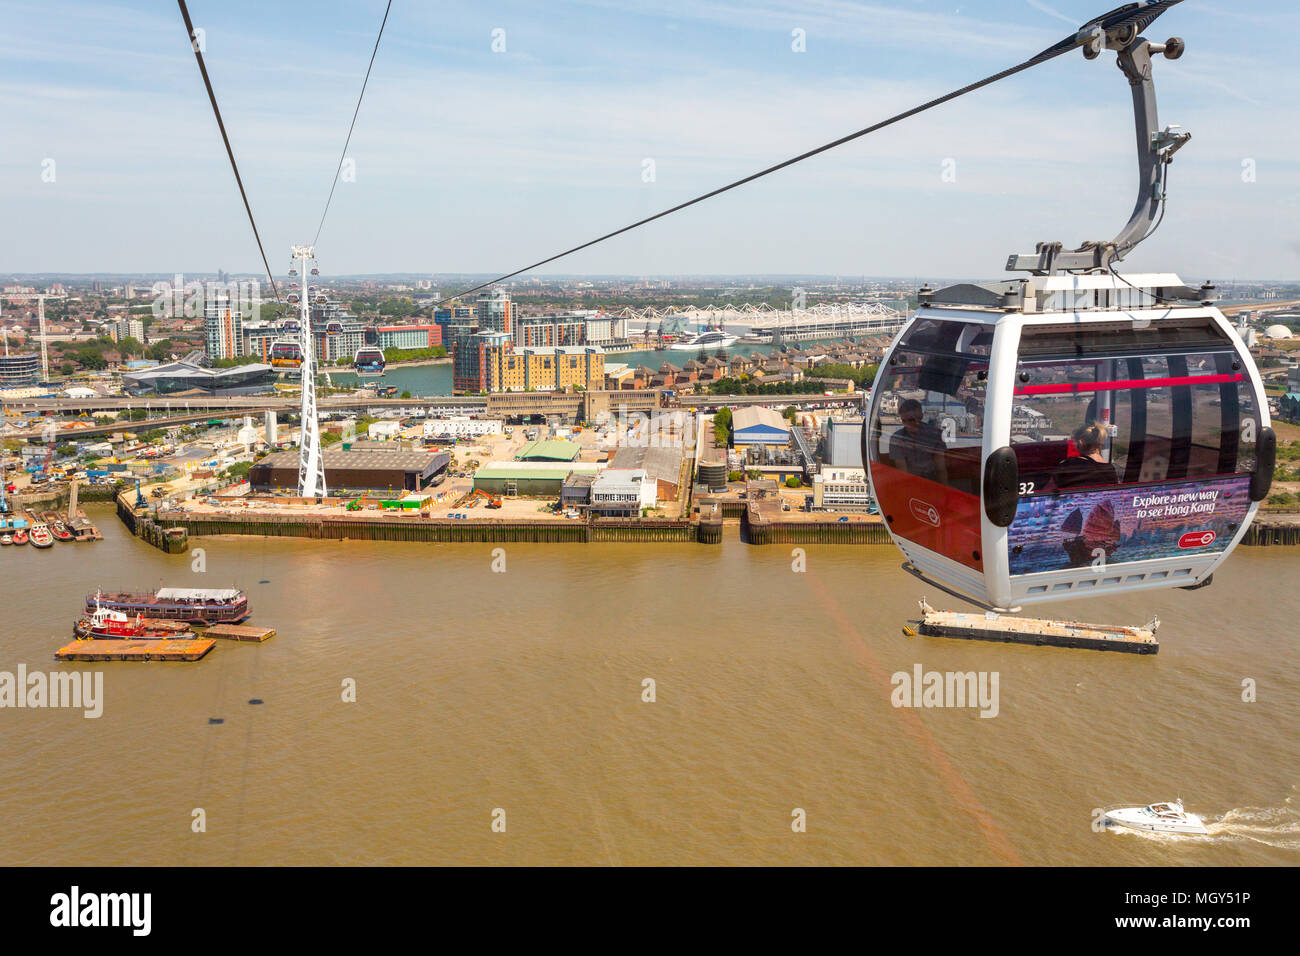 London, United Kingdom - June 11, 2015: Flying high over east London on a cable car.  The Emirates Air Line provides fantastic scenic views of London. - Stock Image